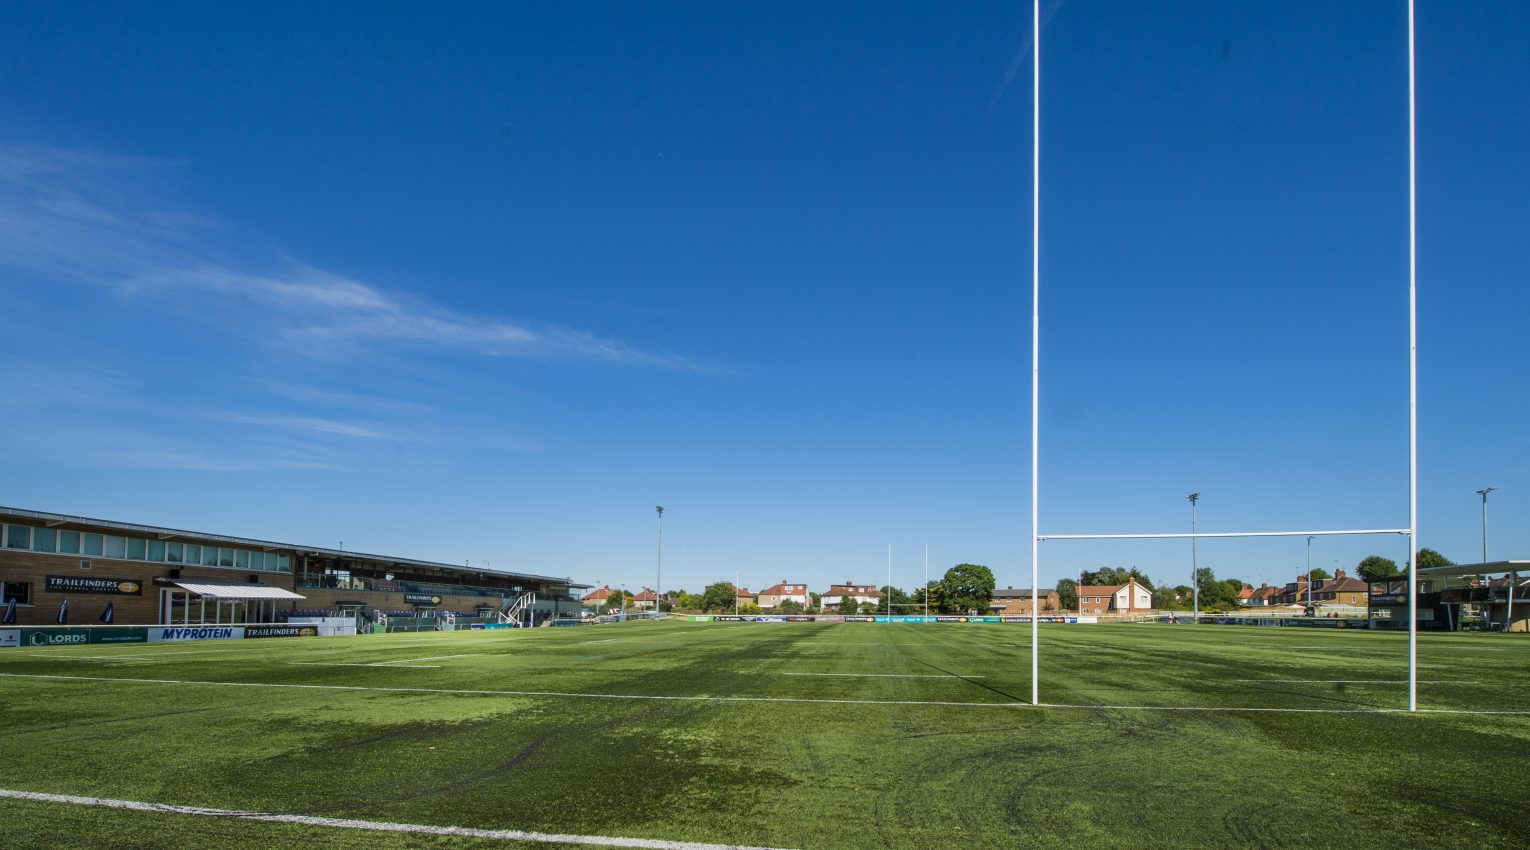 Sports grounds at Ealing Trailfinders